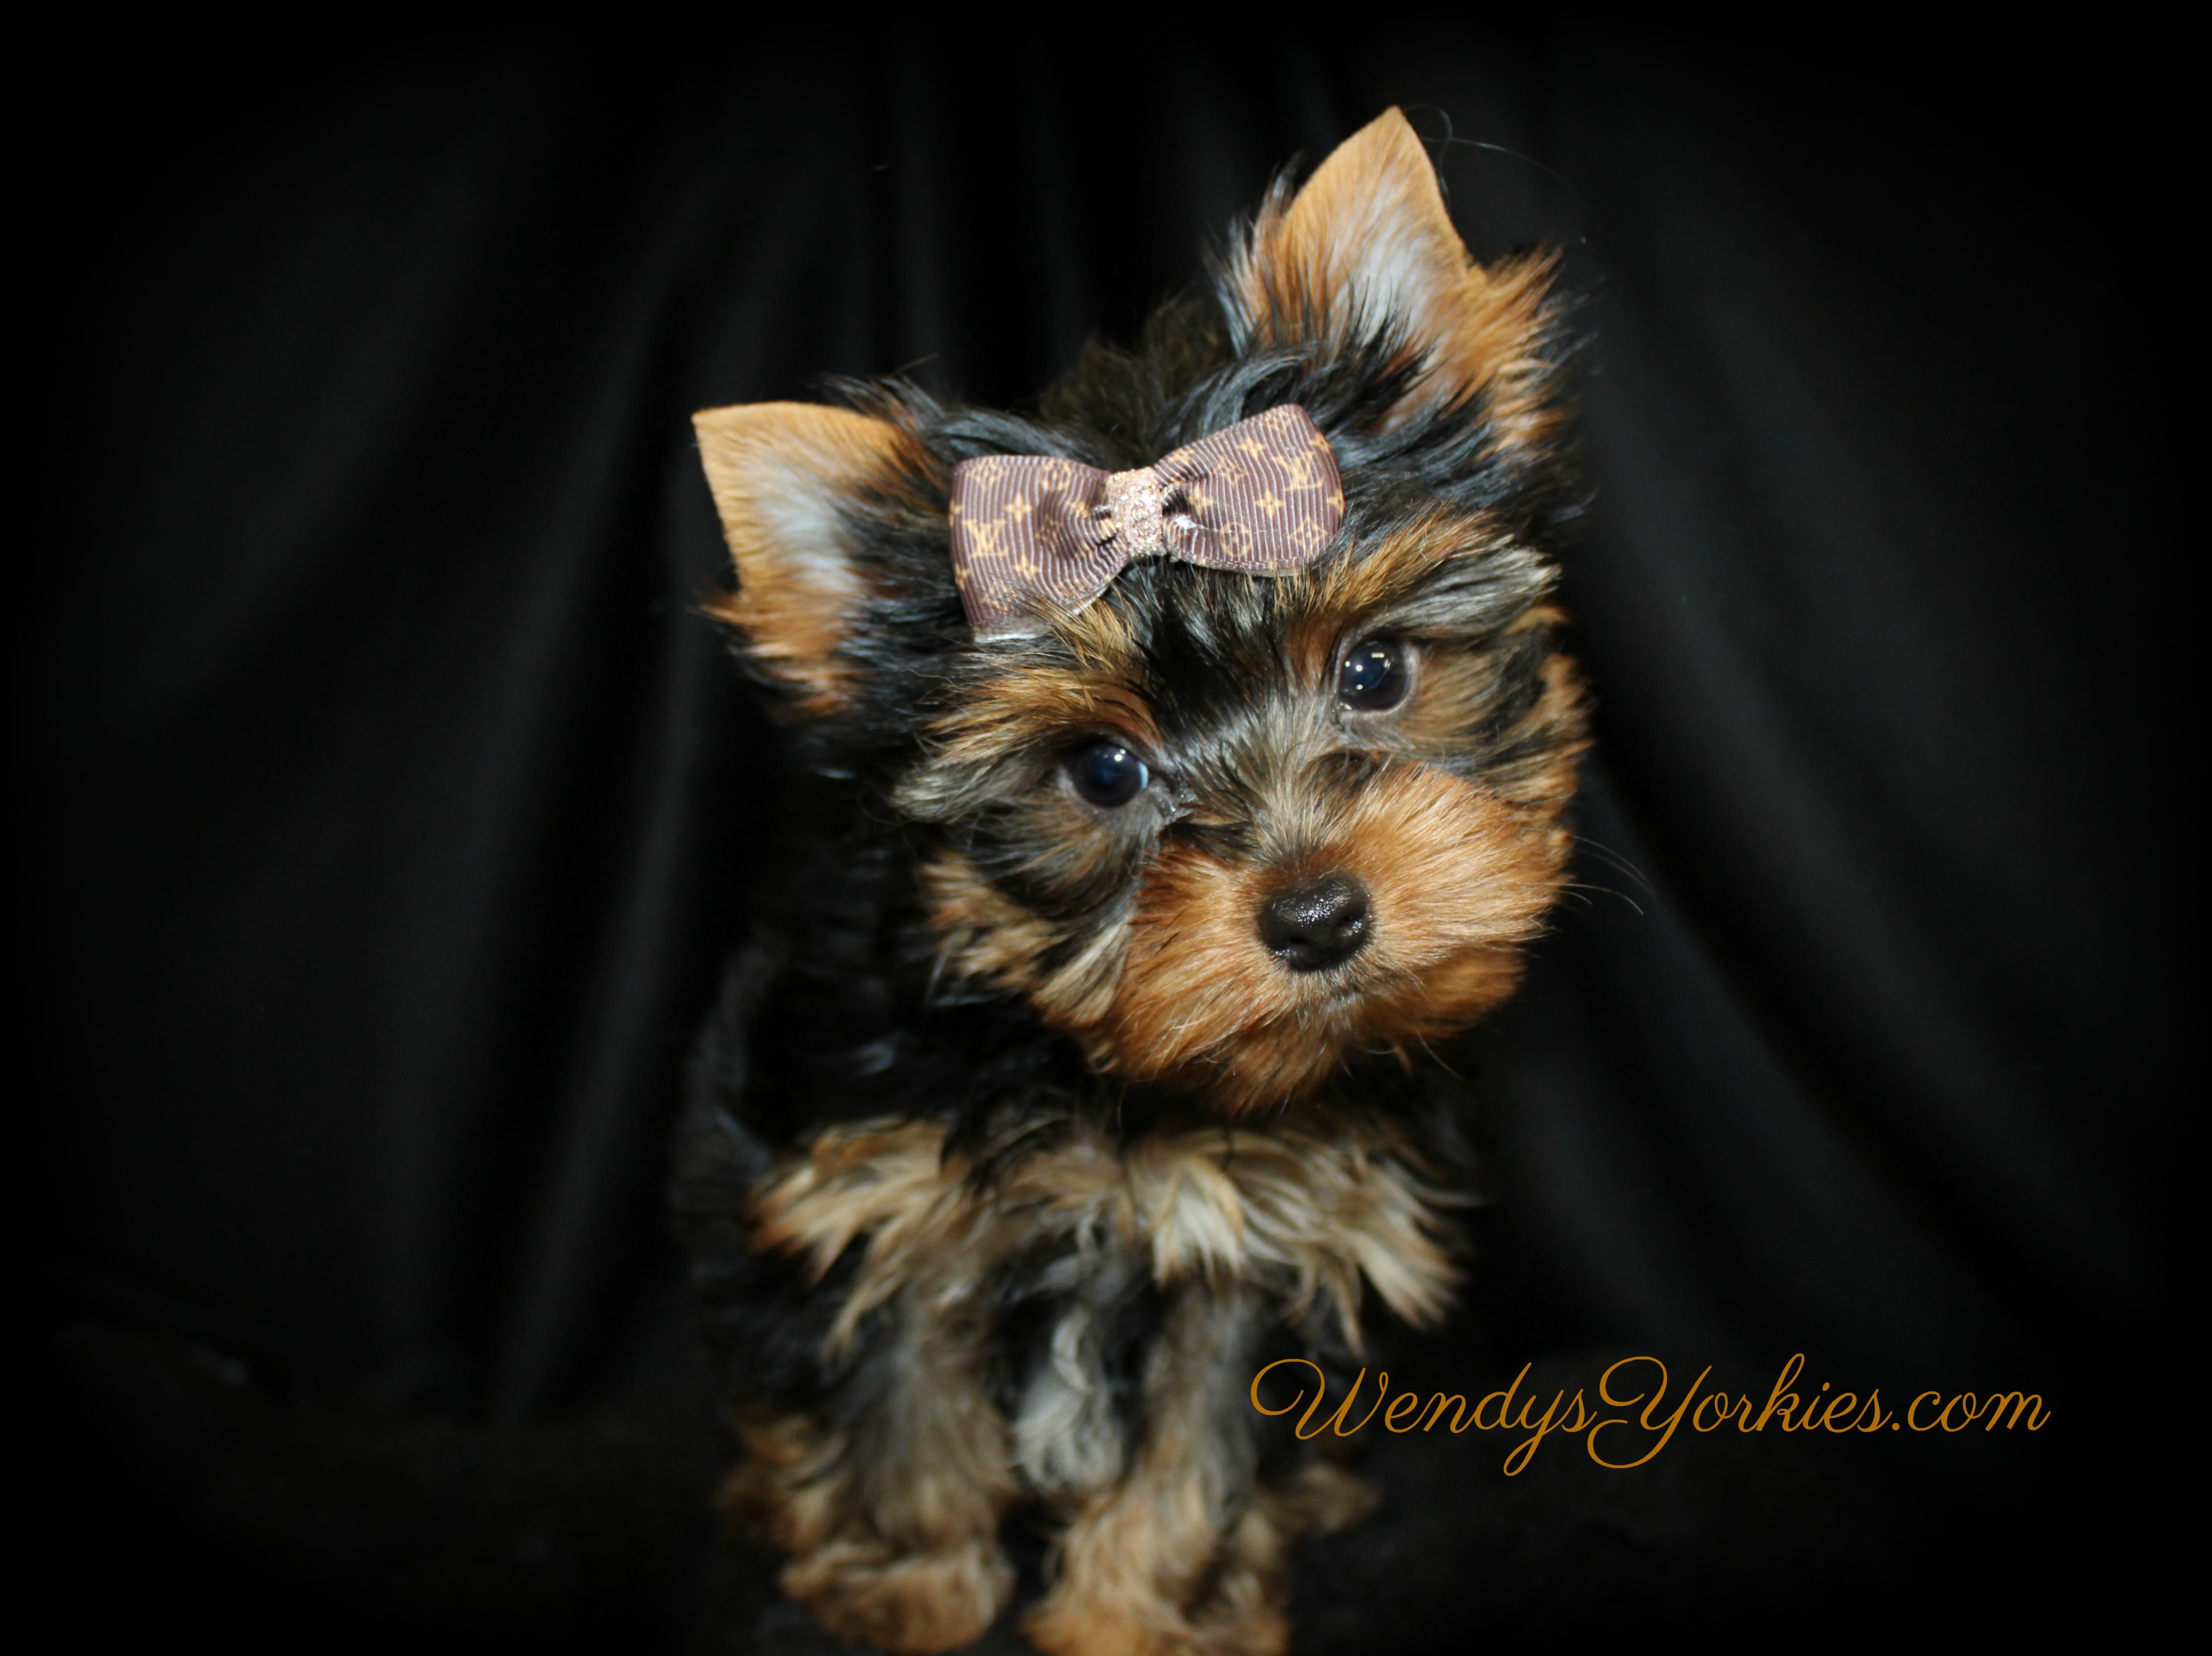 Tiny Male YOrkie puppy for sale, Haley m1, Ringo, WendysYorkies.com